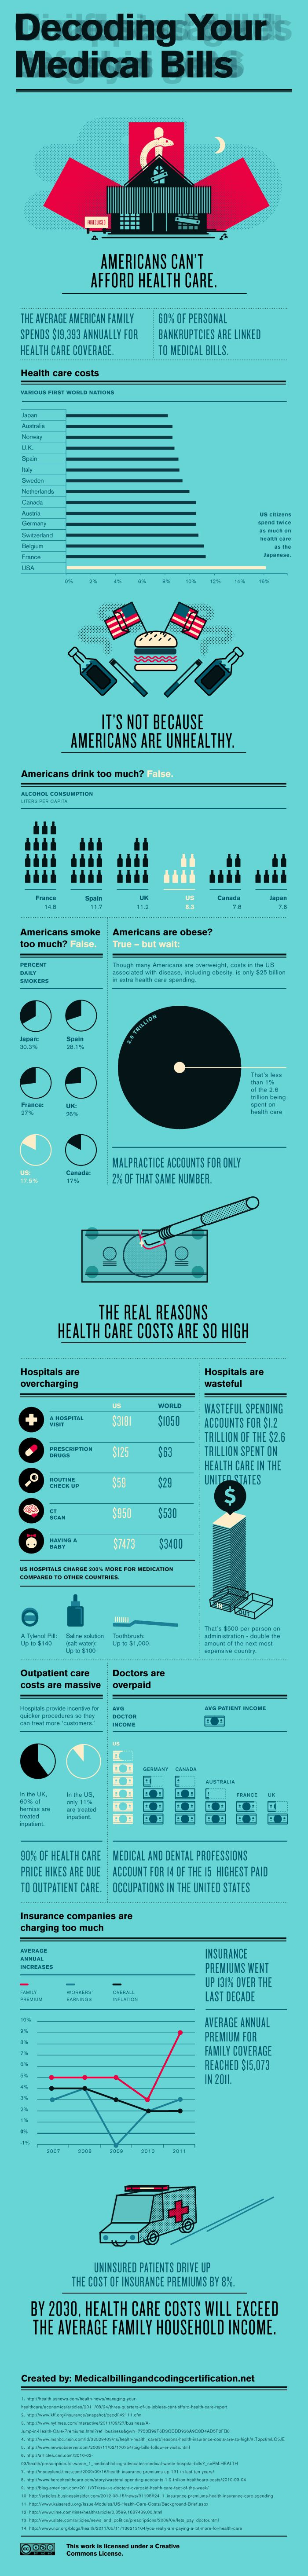 Thanks to Truthout for this infographic about the affordability of healthcare in in the US. This work by Truthout is licensed under a Creative Commons Attribution-Noncommercial 3.0 United States License.